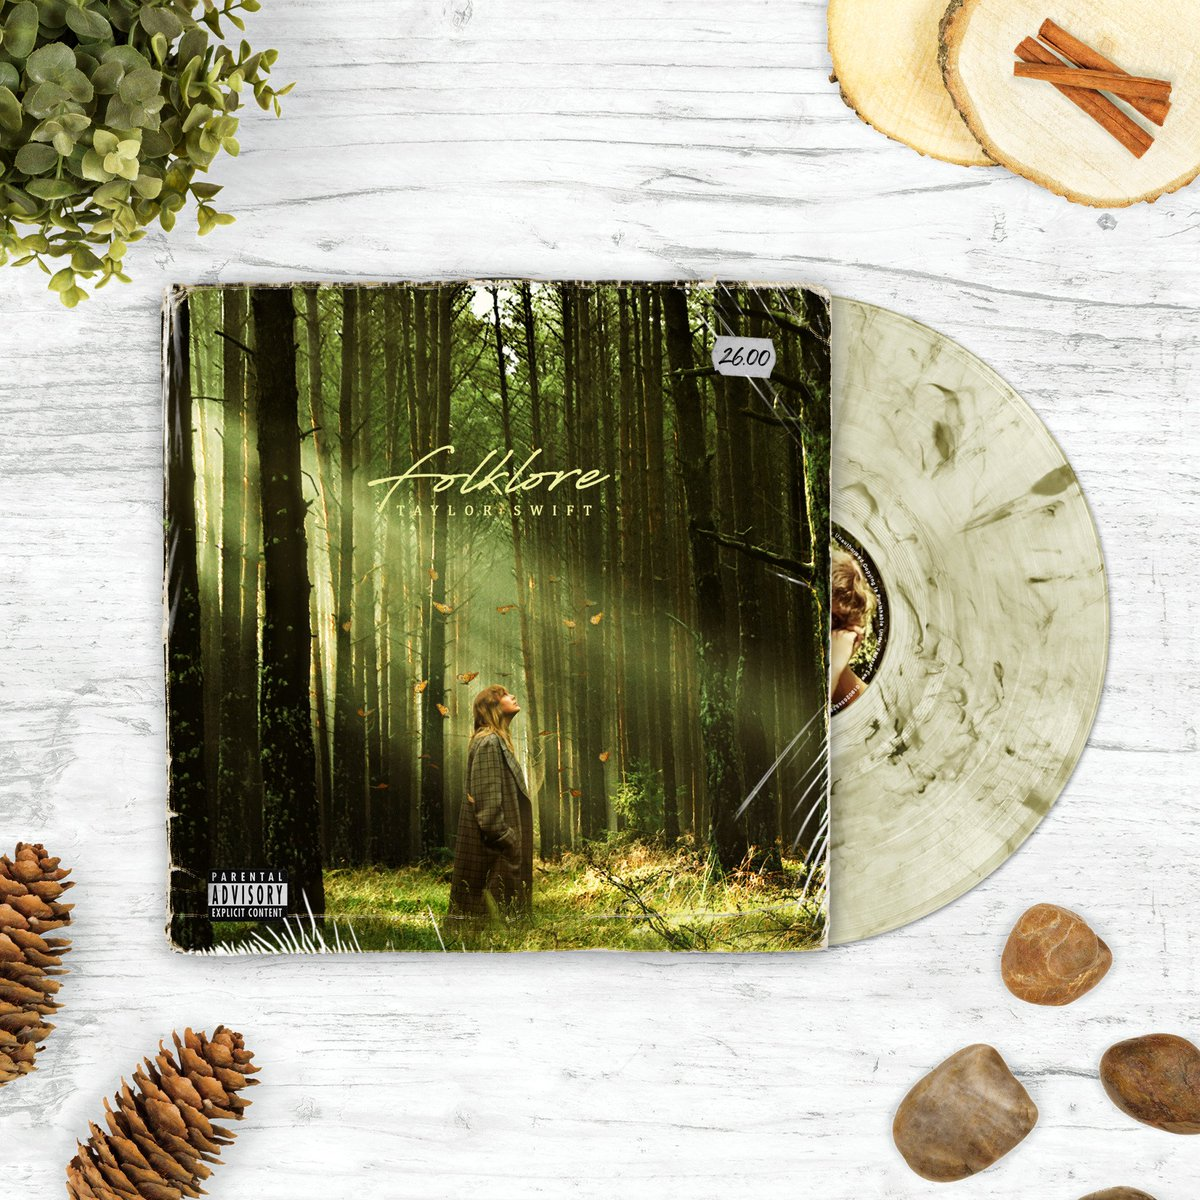 taylor swift's folklore album concept redesign 🌲🍃 https://t.co/P2s7diucsp